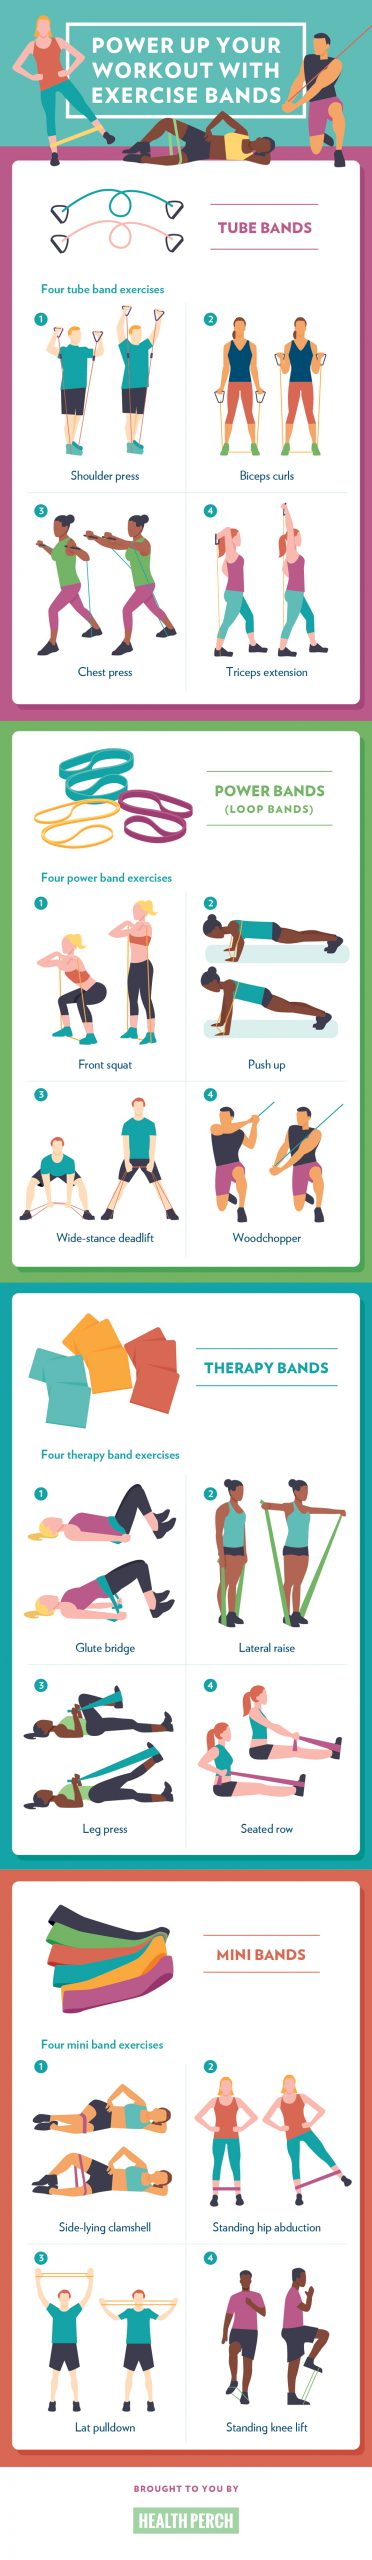 4 Types of Exercise Bands and How to Use Them